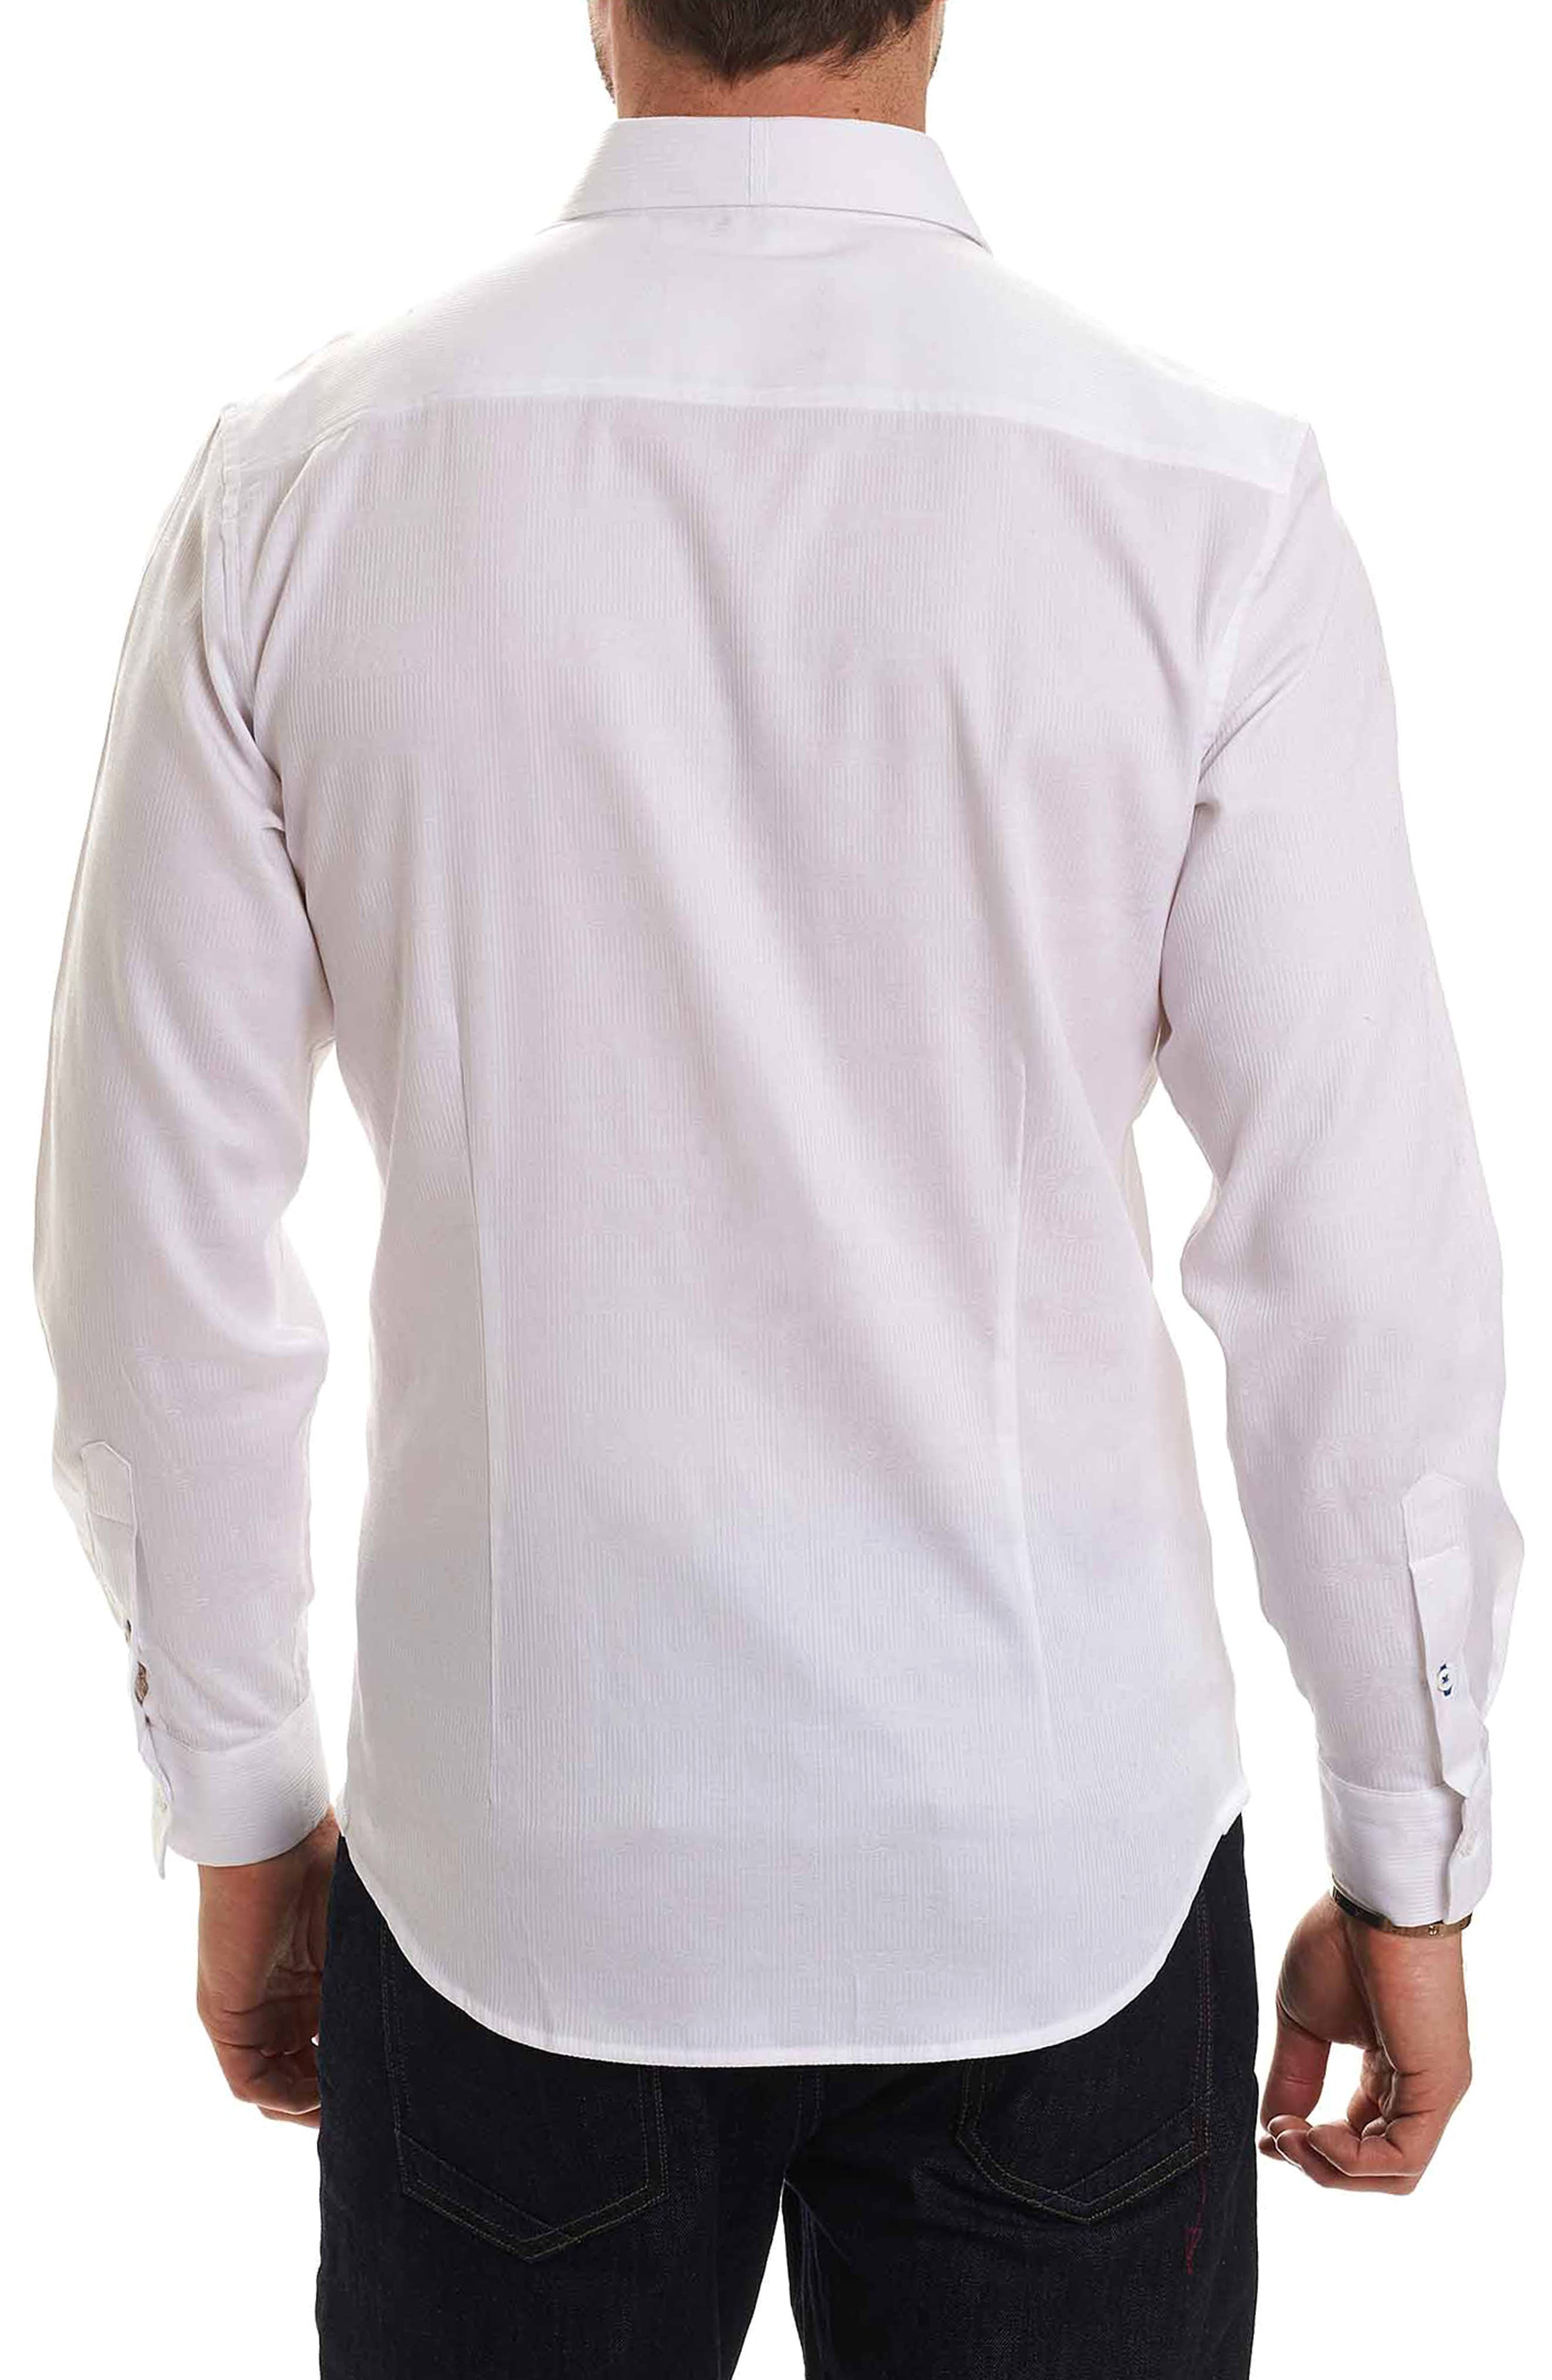 Christopher Print Sport Shirt,                             Alternate thumbnail 2, color,                             White